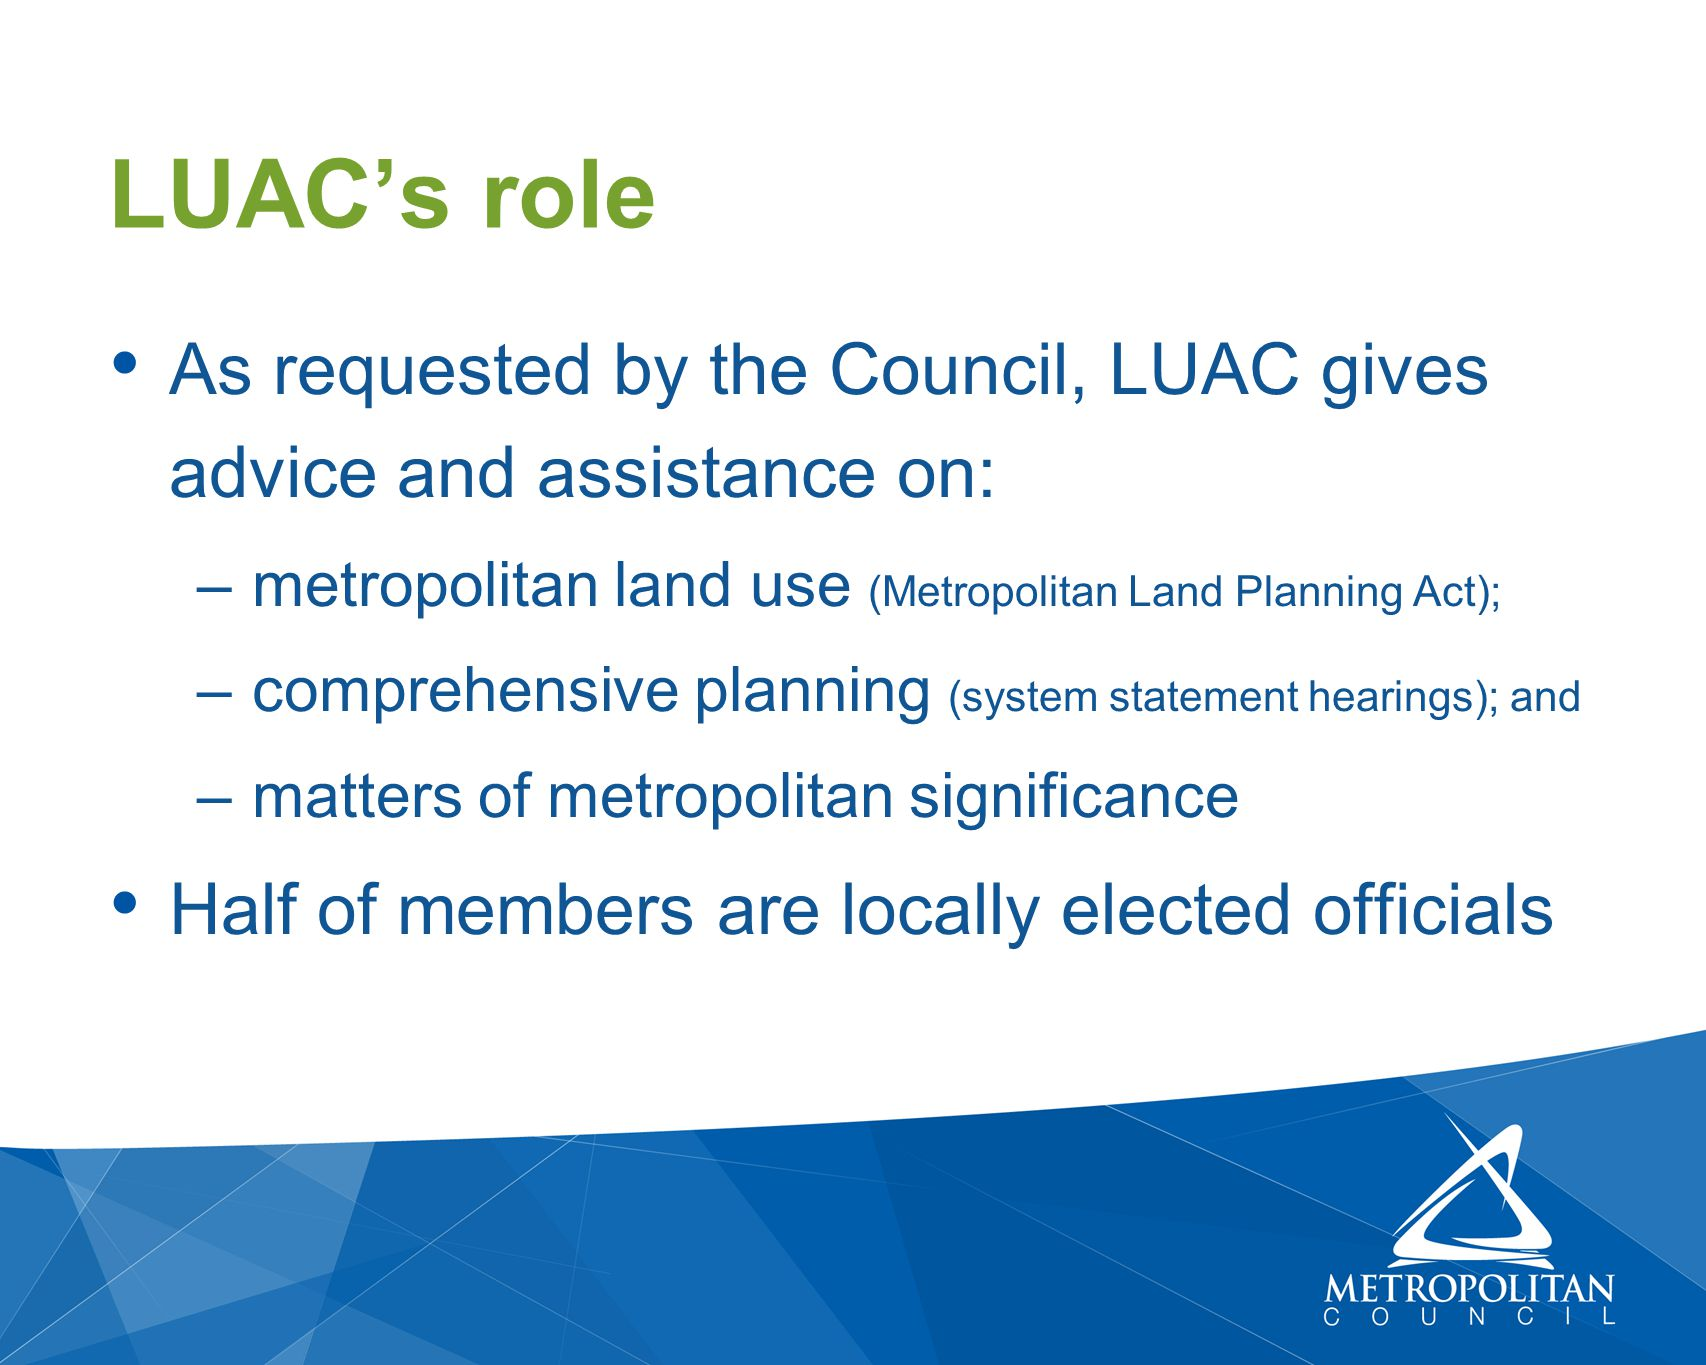 As requested by the Council, LUAC gives advice and assistance on: –metropolitan land use (Metropolitan Land Planning Act); –comprehensive planning (sy